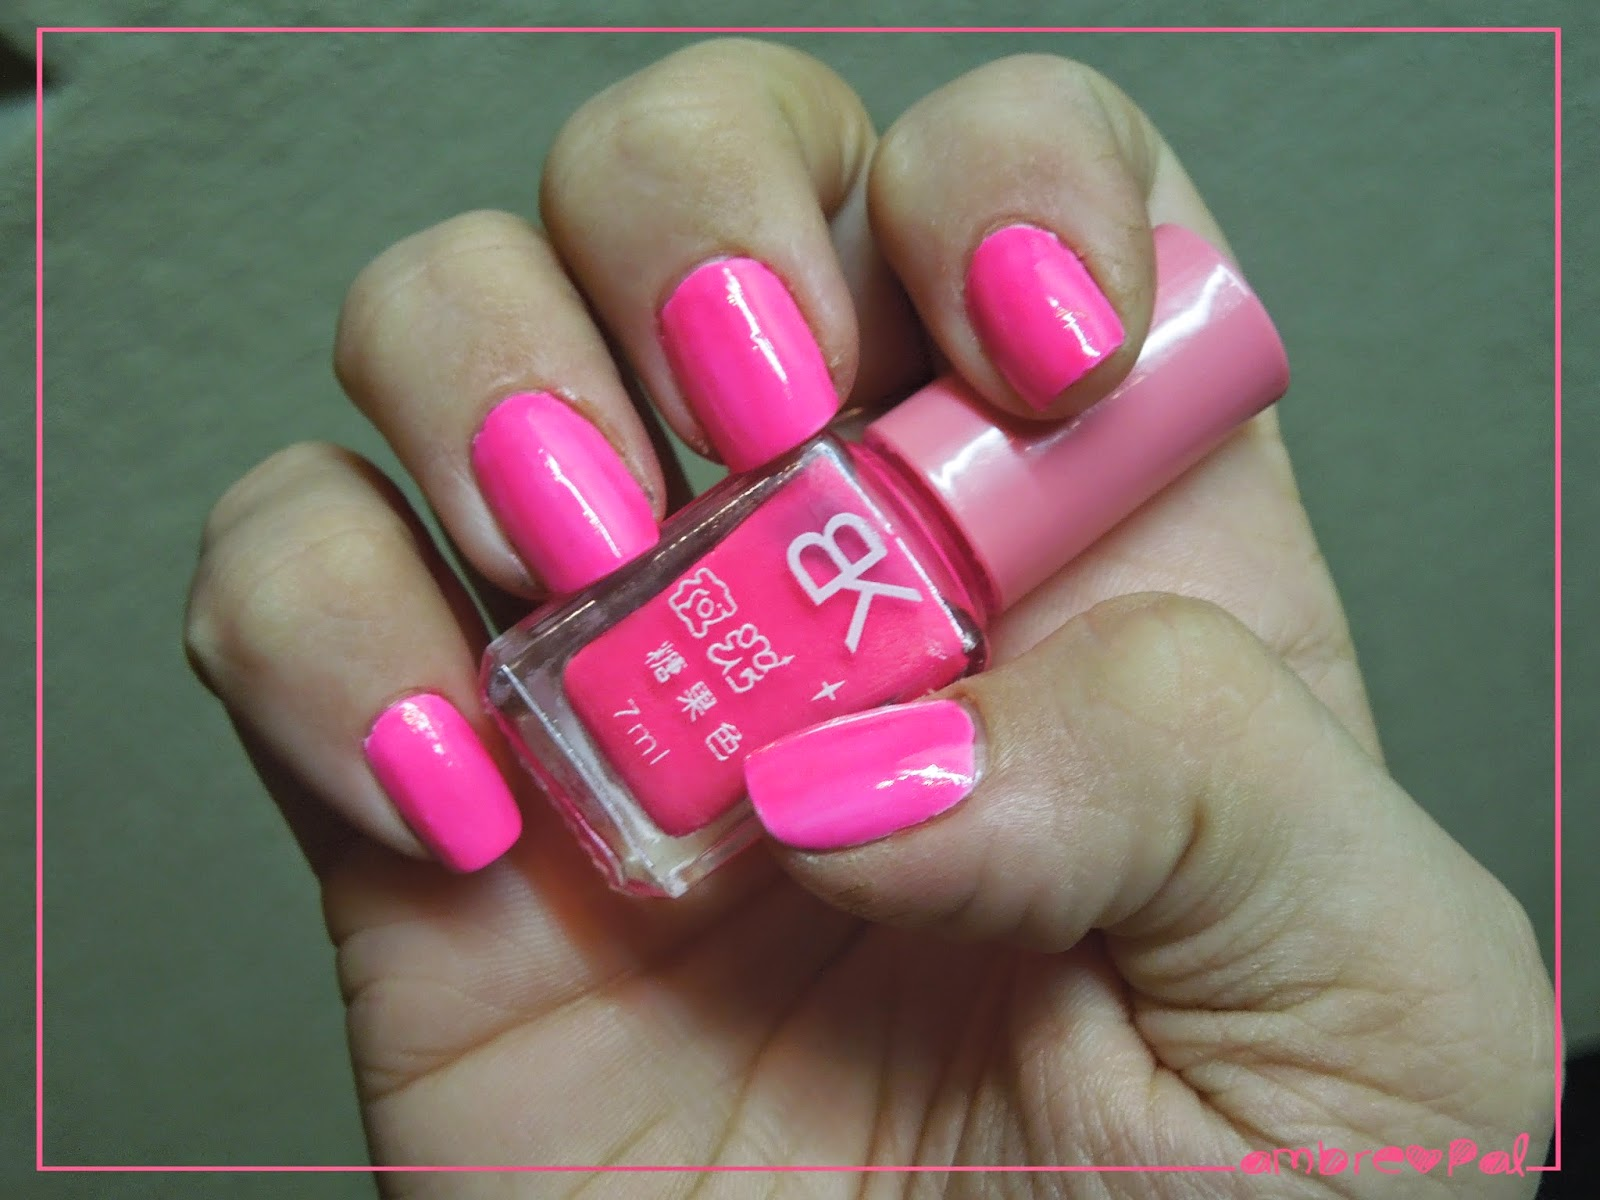 http://www.neejolie.fr/mlflacon-vernis-fluorescents-couleur-bonbon-couleurs-disponibles-p-4837.html